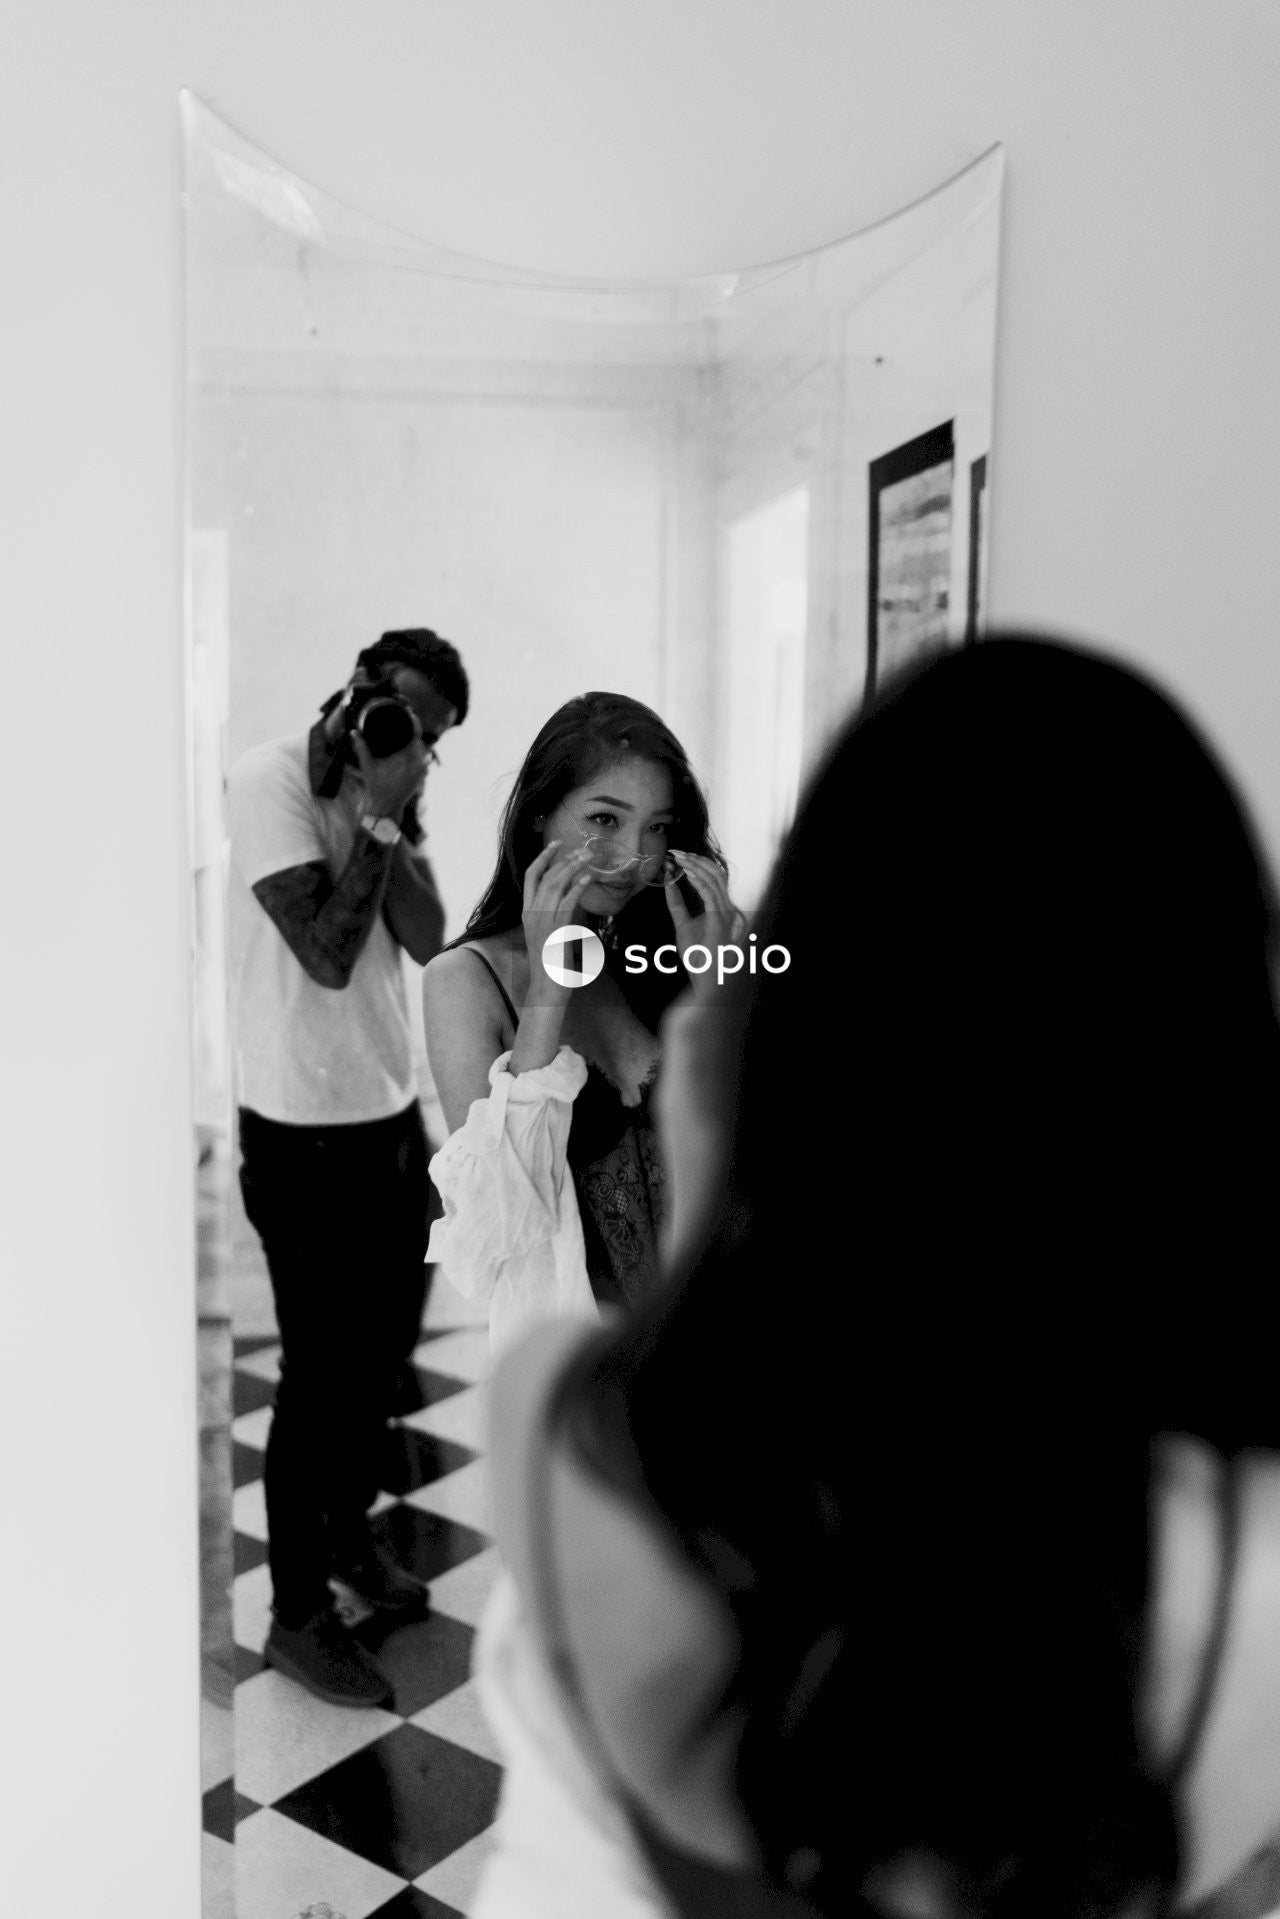 Woman standing in front of a mirror in front of man using camera